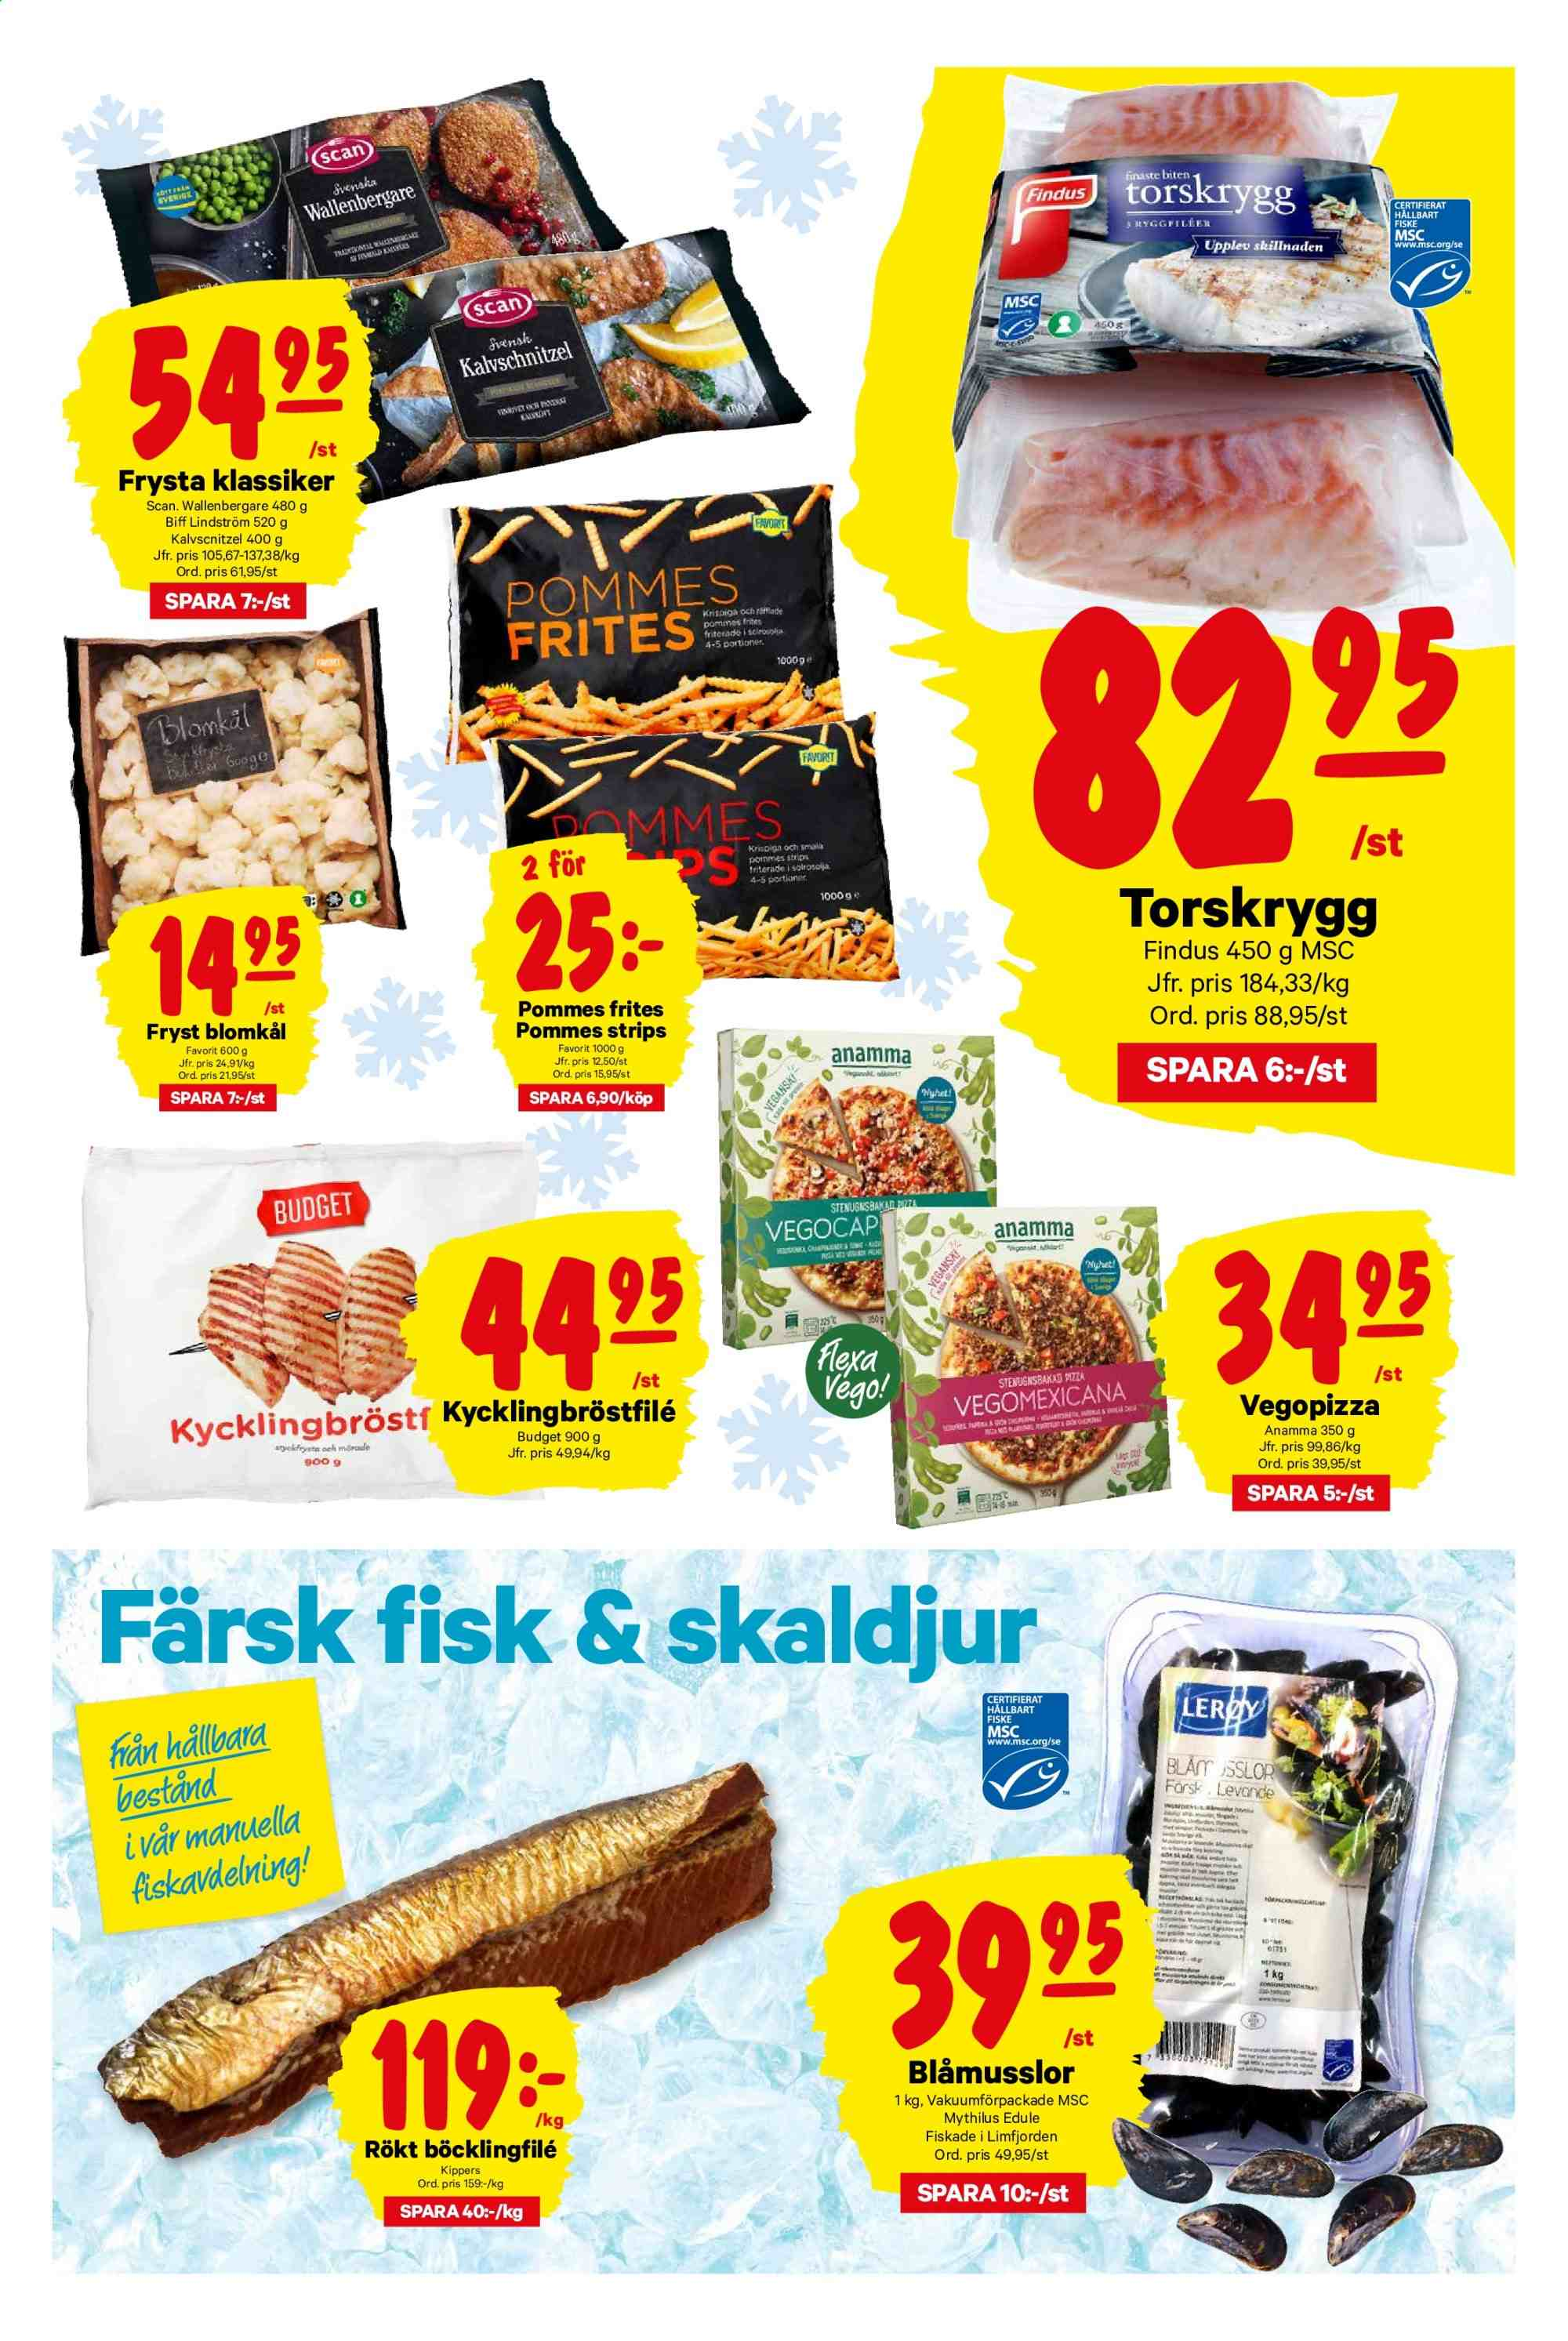 City Gross reklamblad - 4/11 2019 - 10/11 2019. Sida 11.